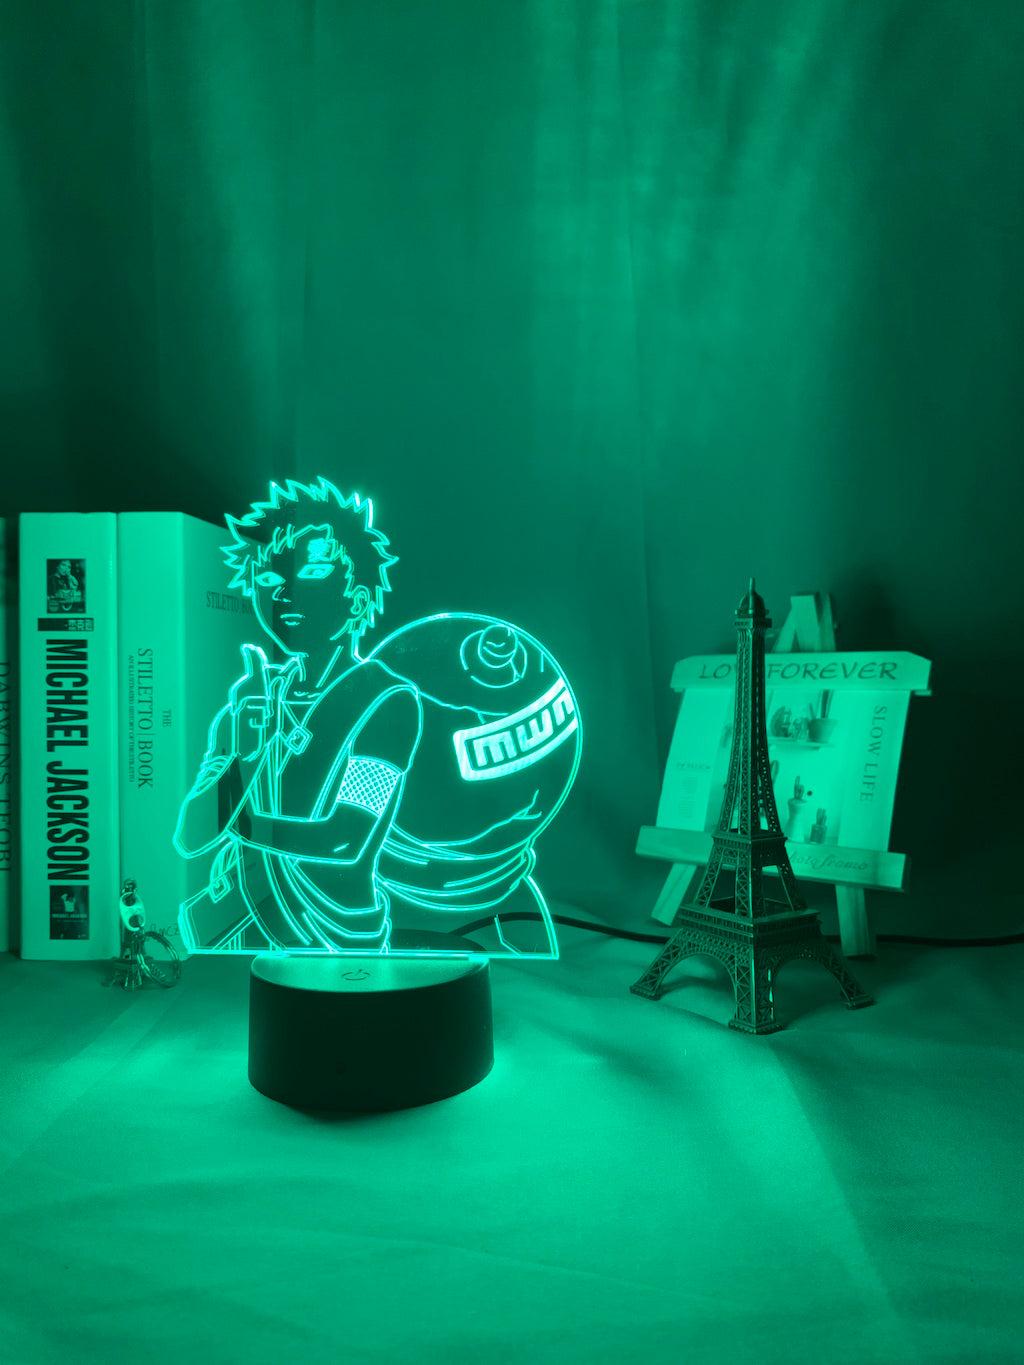 Gaara Led Lamp